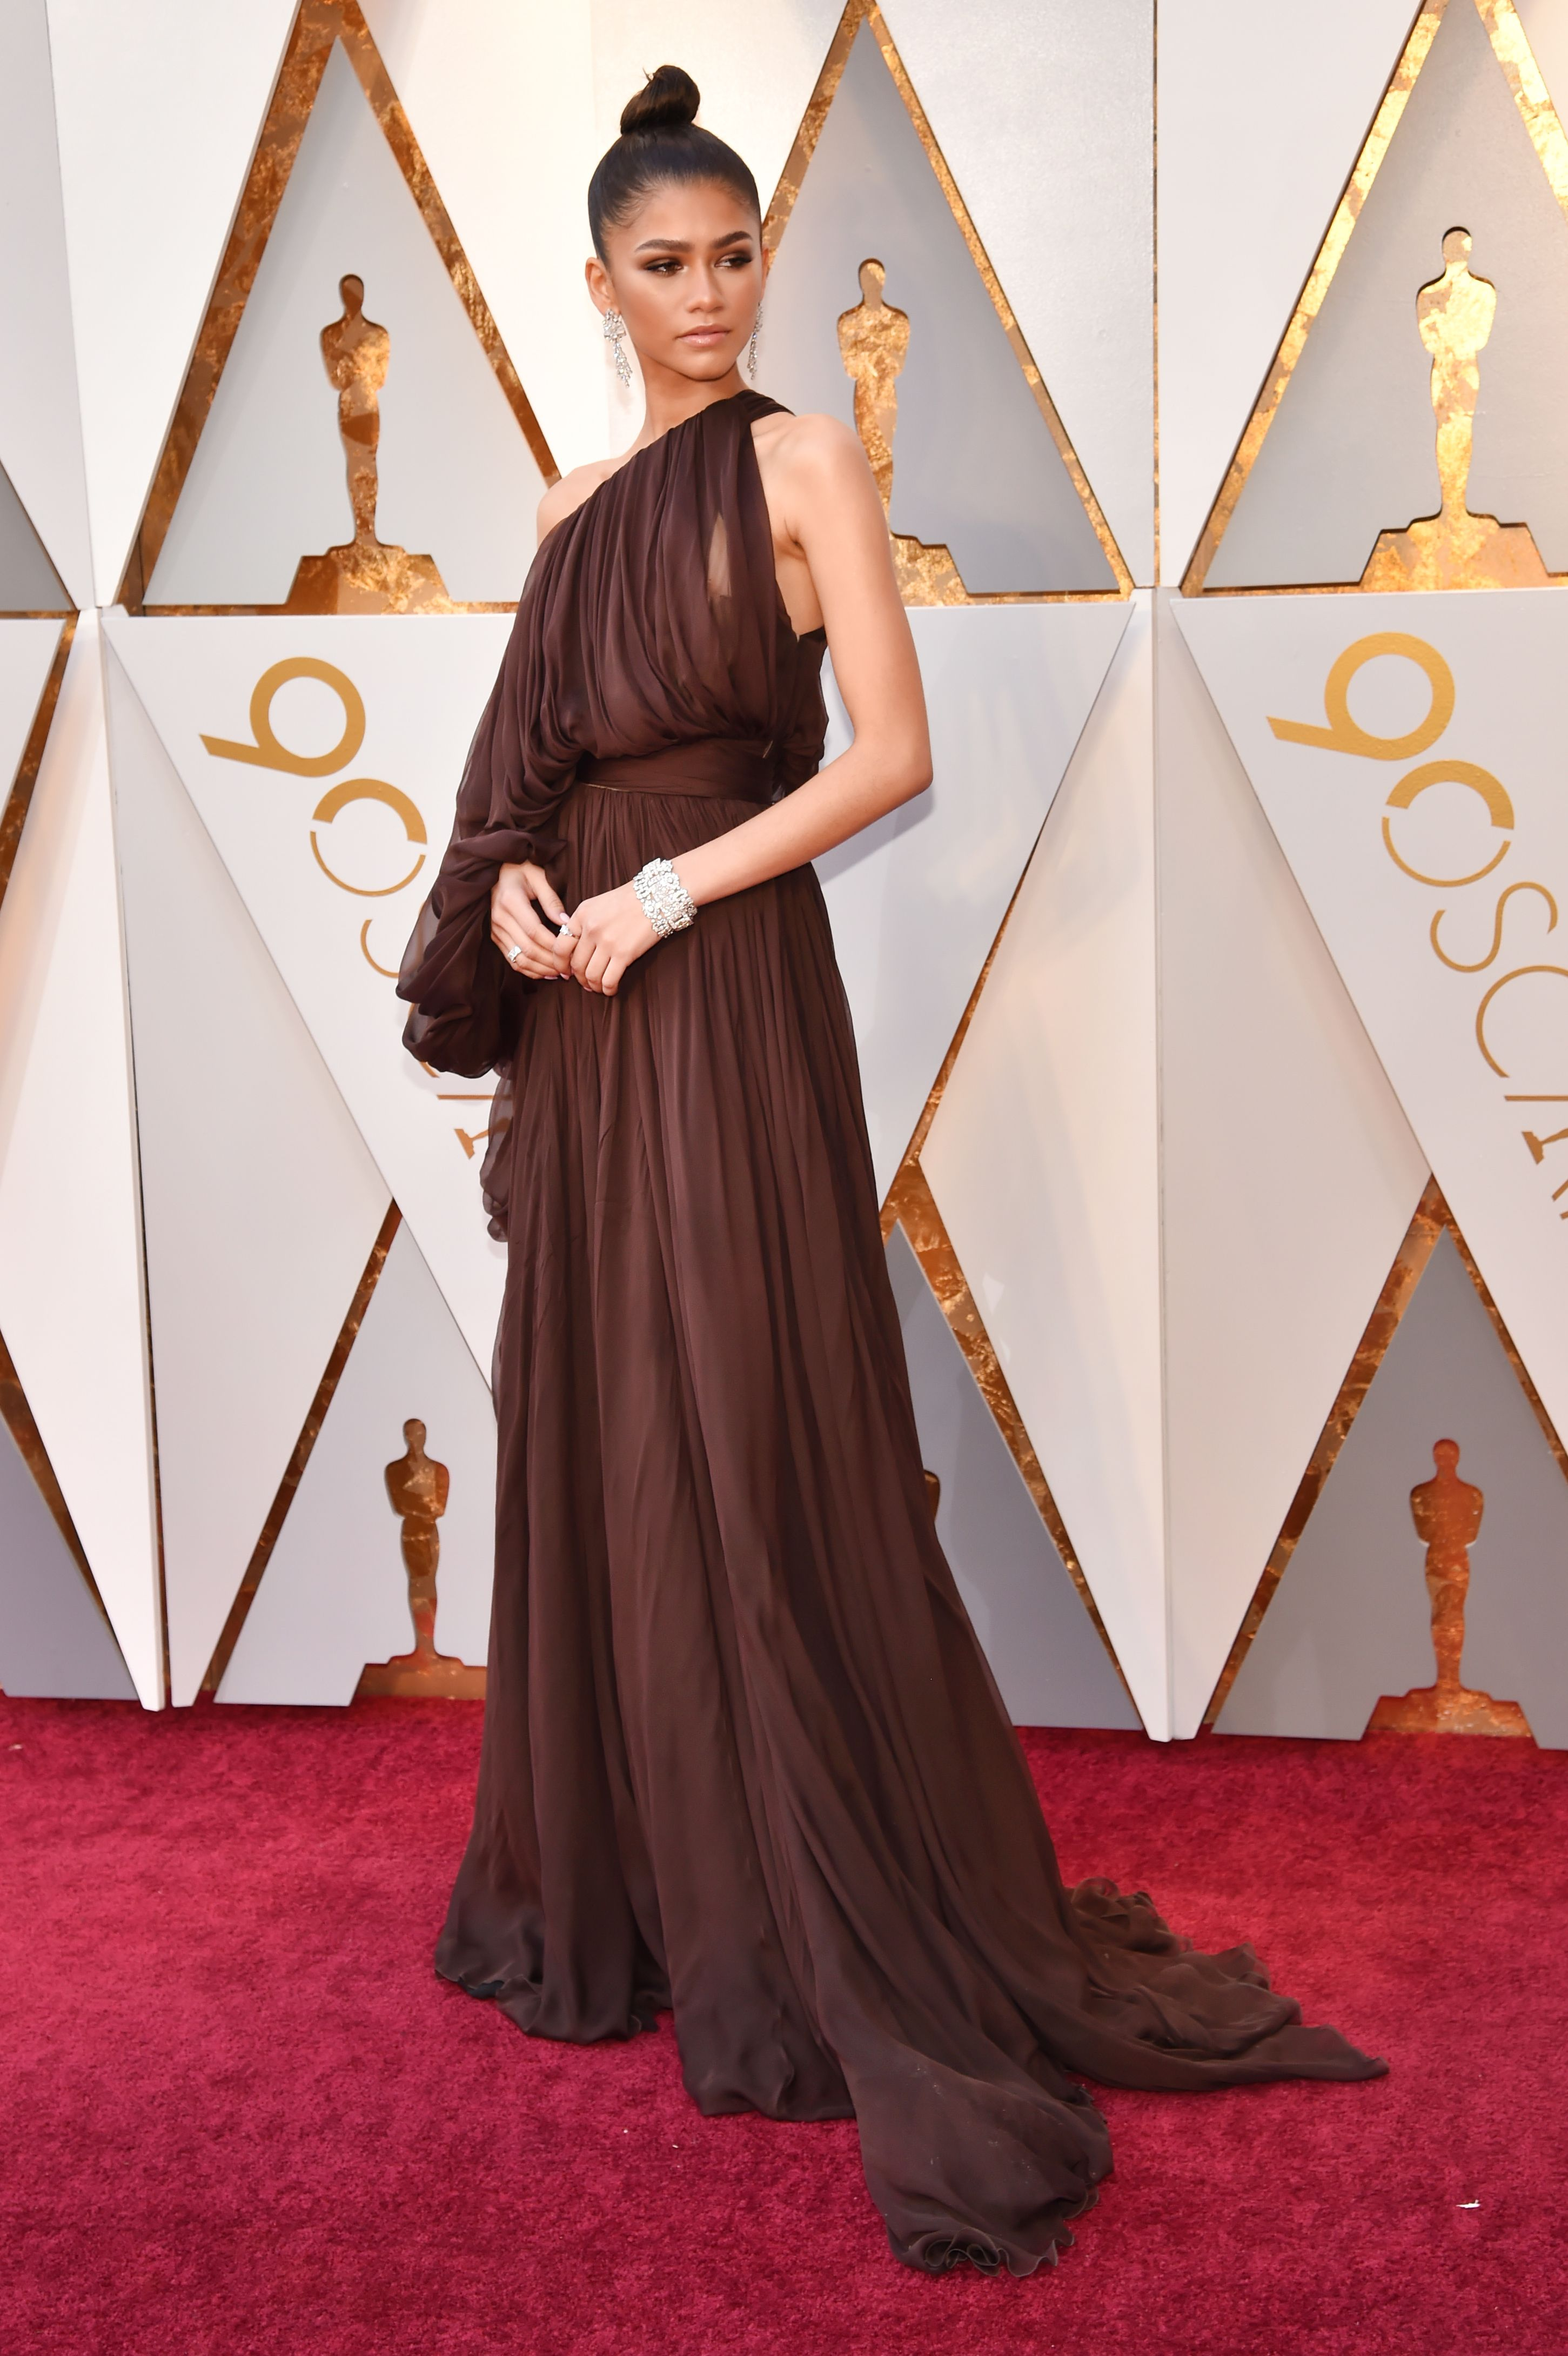 The Best-Dressed Celebrities from the 2018 Oscars Red Carpet  0250fc2b7